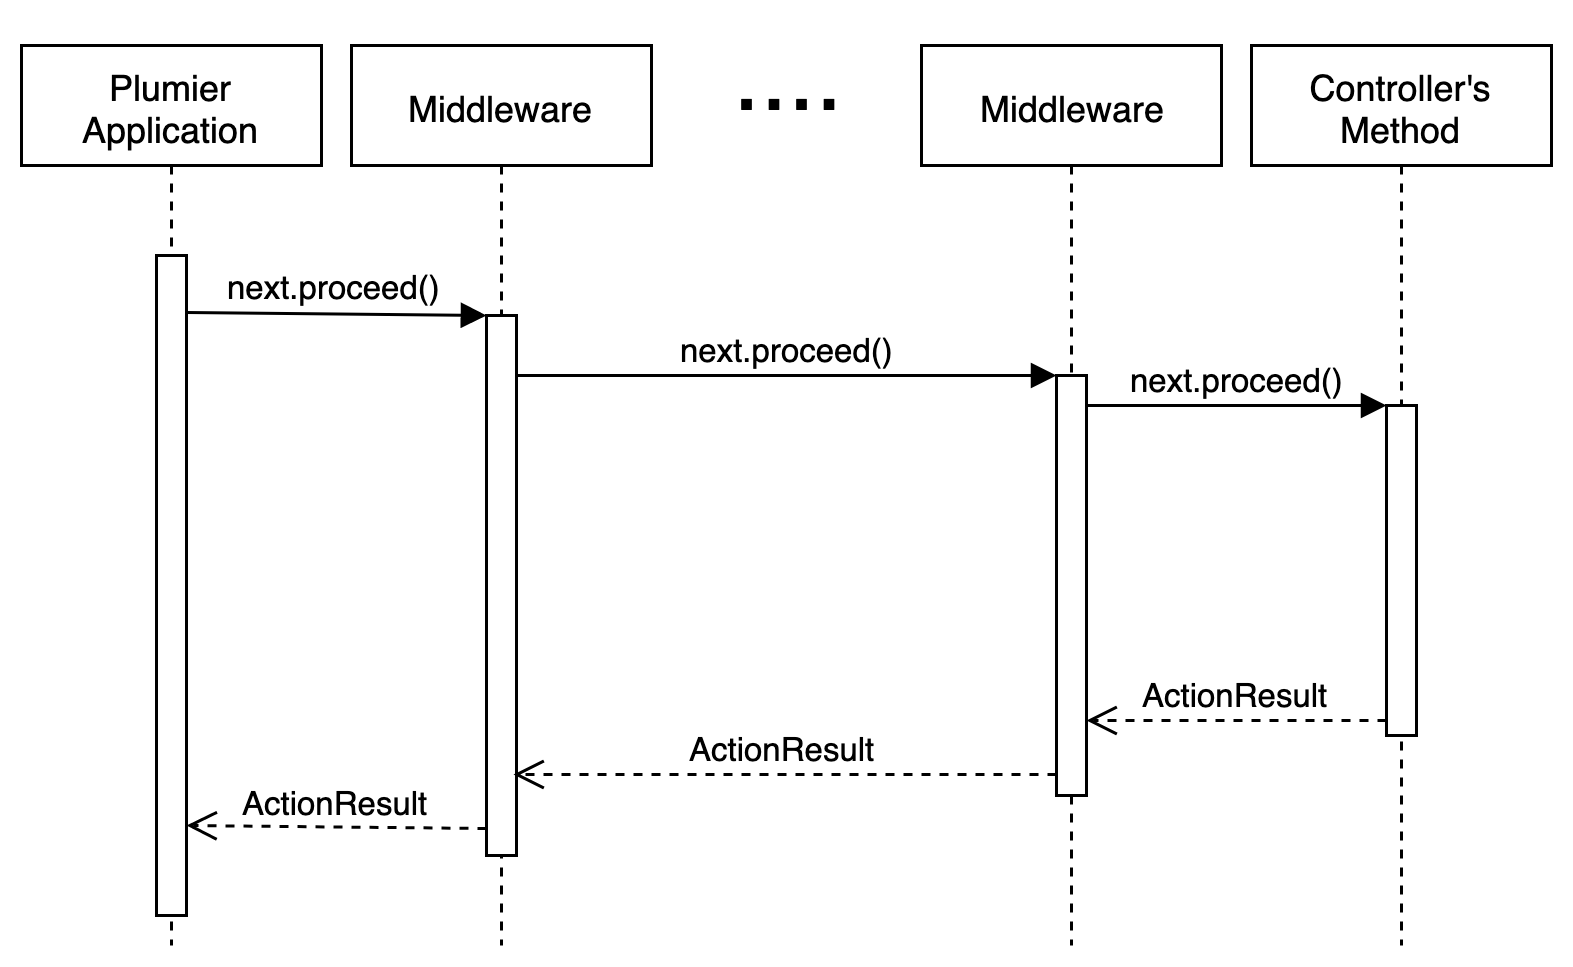 hight resolution of plumier middleware is a sequence of invocation that runs one to another using chain of execution named middleware pipeline the invocation can be other